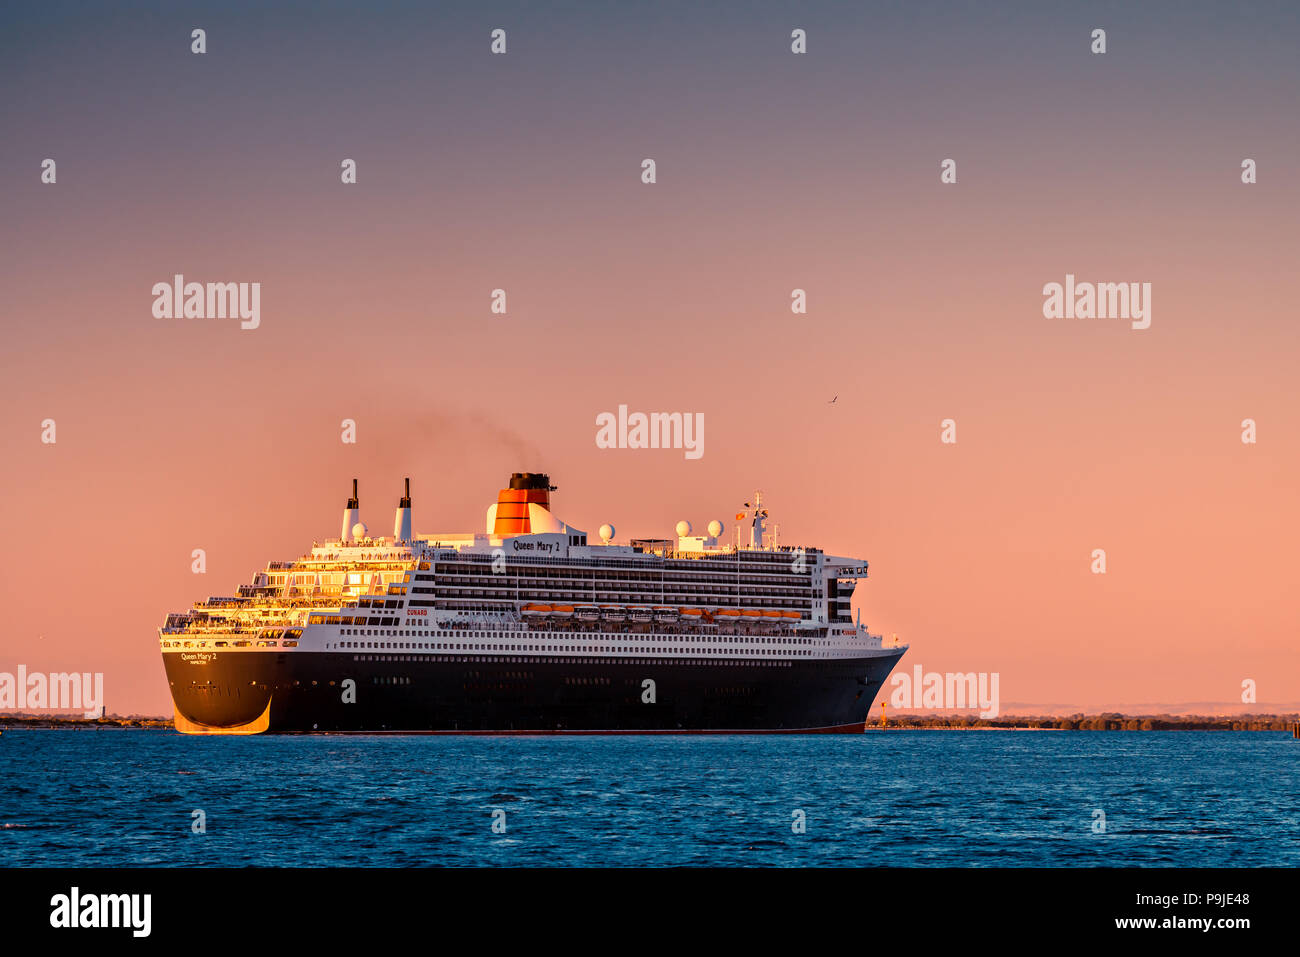 Adelaide, Australia - February 16, 2018: Cunard Line RMS Queen Mary 2 with people on board departing for a cruise from Outer Harbour, Port Adelaide Stock Photo